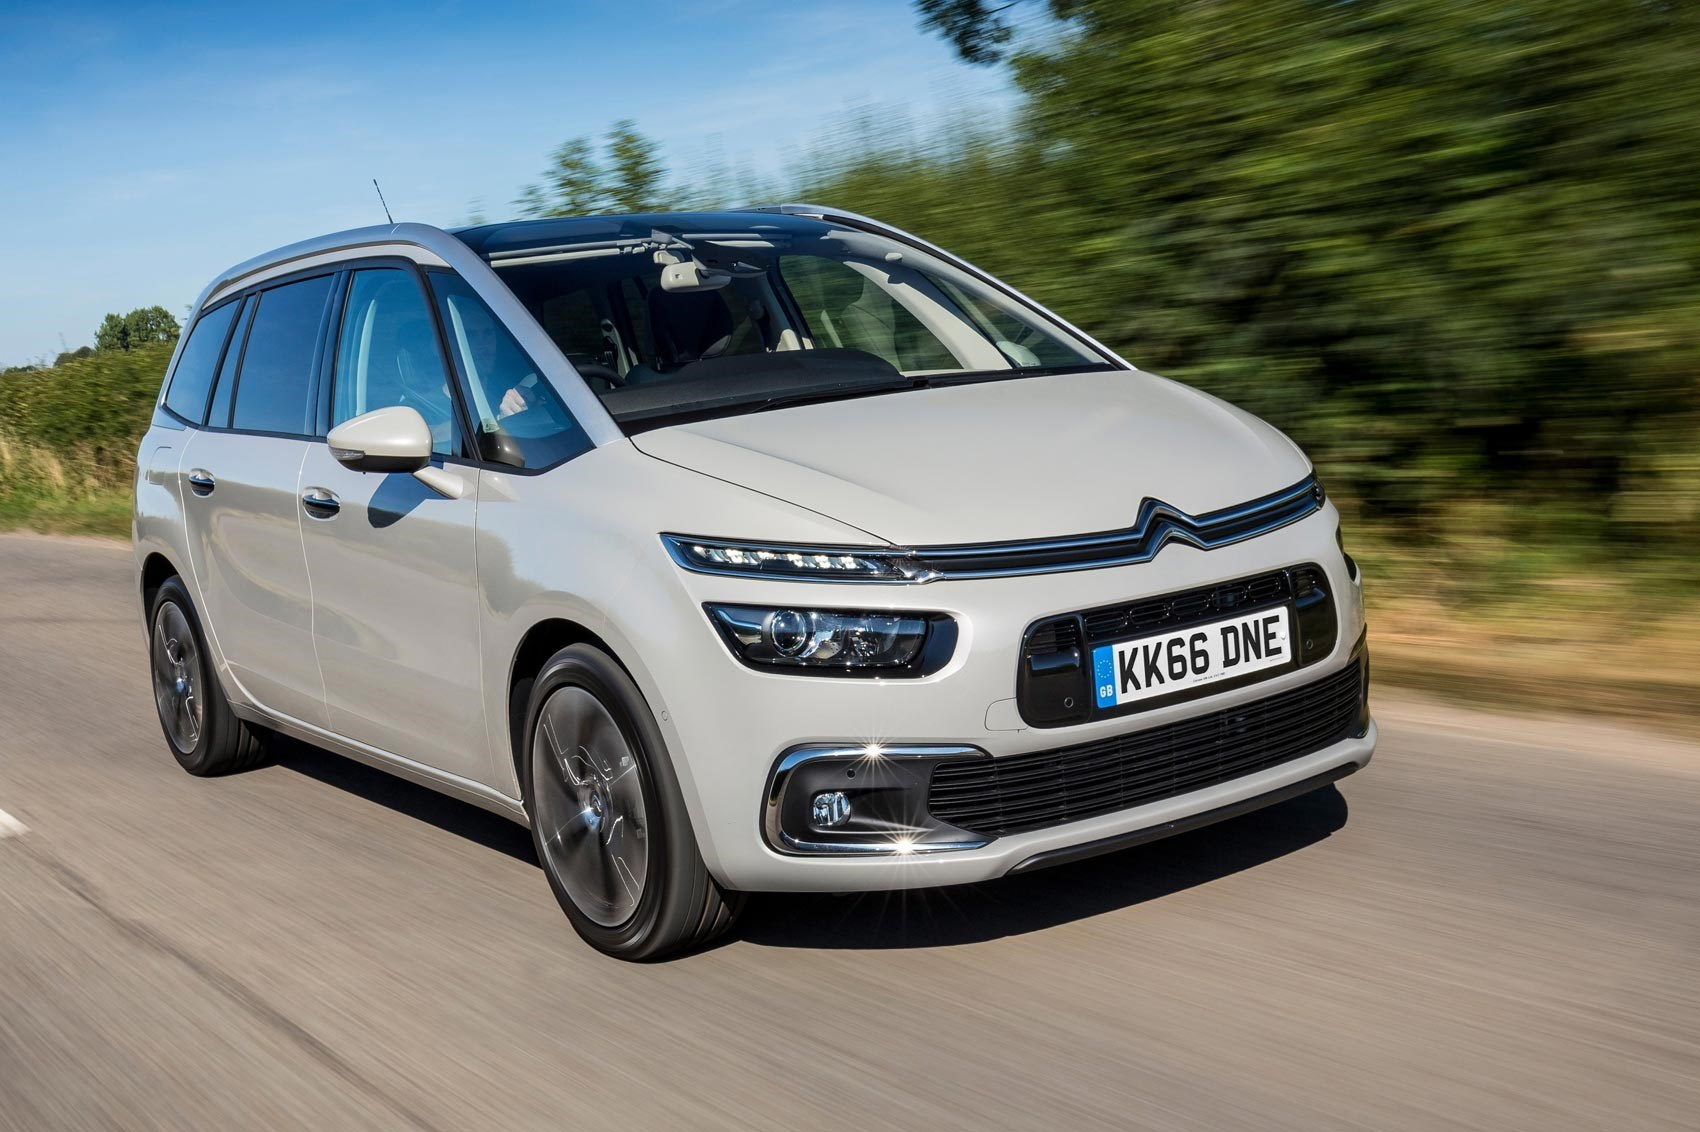 Best 7 Seater Cars >> Best 7 Seater Cars 2019 We Name The Top Seven Seaters On